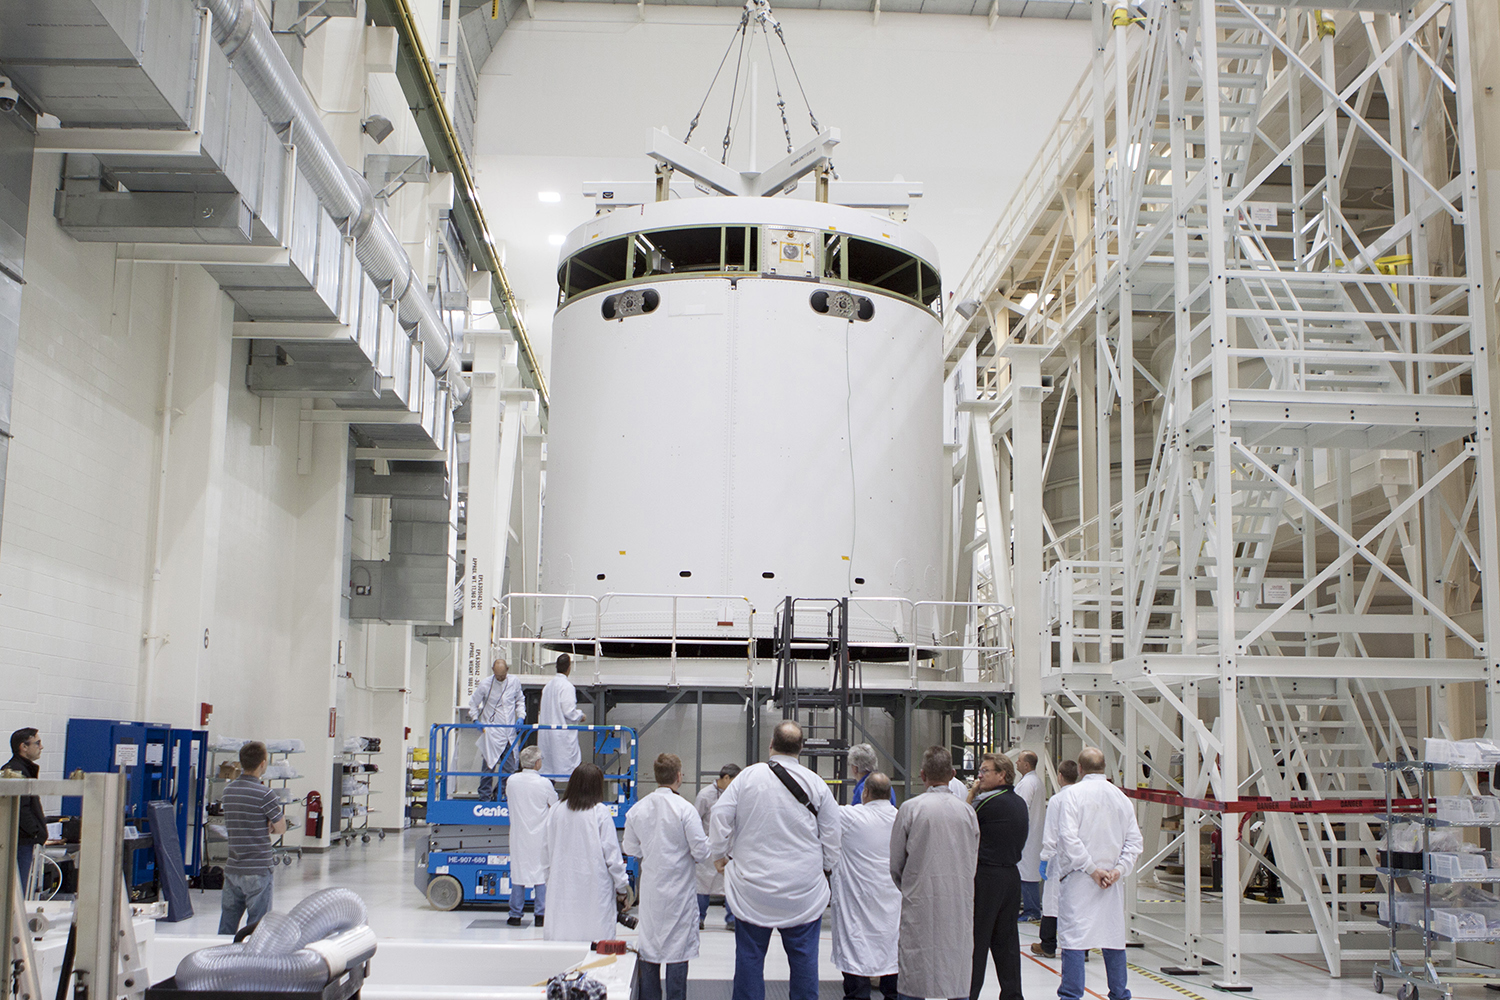 Inside the Operations and Checkout Building high bay at NASA's Kennedy Space Center in Florida, NASA and Lockheed Martin technicians and engineers monitor the progress as a crane is used to lift the Orion service module from a test stand and move it to the Final Assembly and System Testing, or FAST, cell further down the aisle